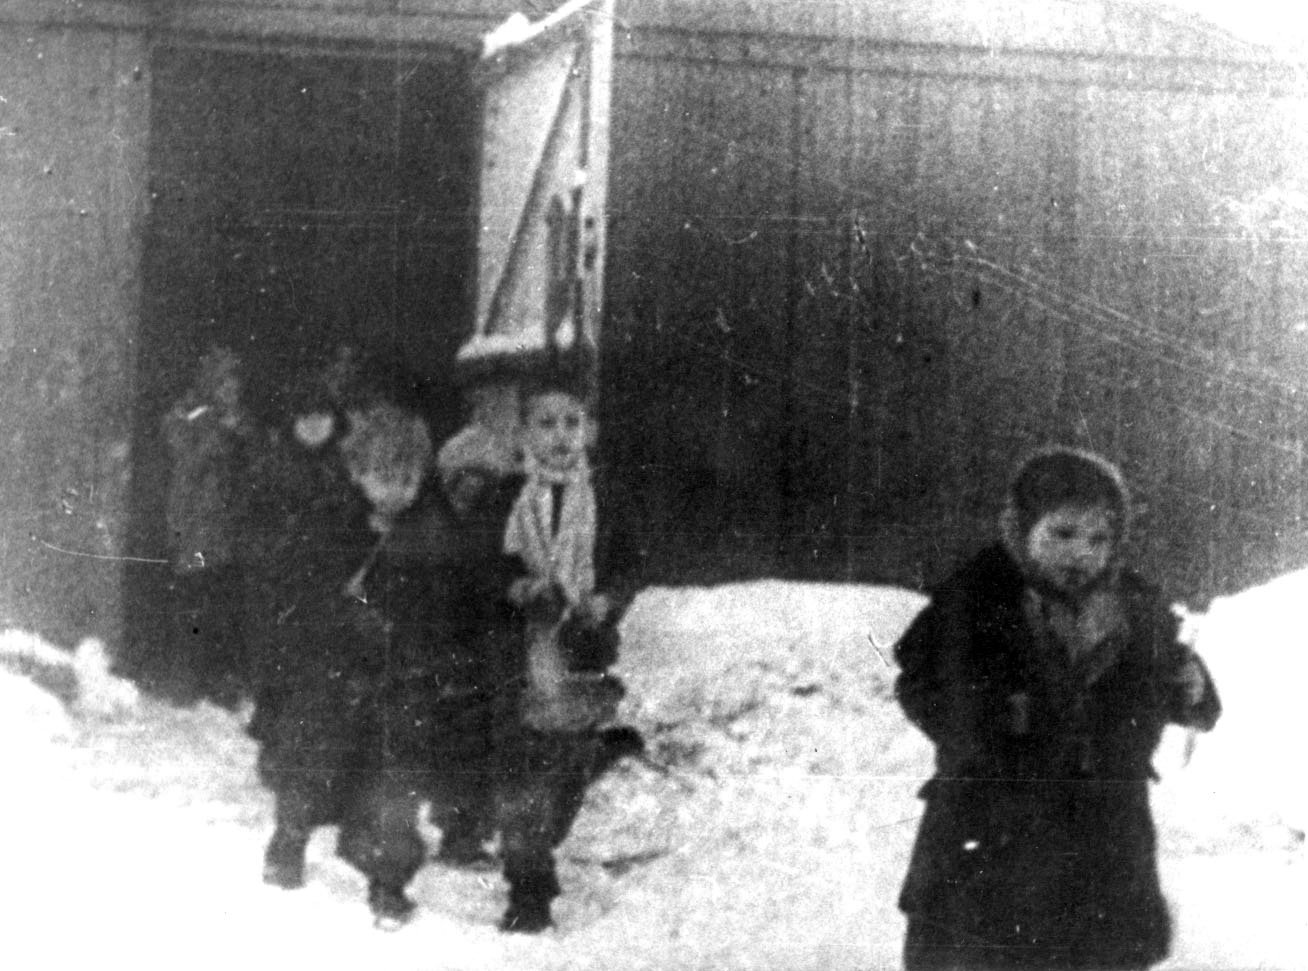 Children are seen after the liberation of the Nazi death camp Auschwitz-Birkenau in 1945 in Oswiecim, Poland. Historians estimate the Nazis sent at least 1.3 million people to Auschwitz between 1940-45, and it is believed that some 1.1 million of those perished there. Auschwitz was liberated by the Russian Army Jan. 27, 1945.